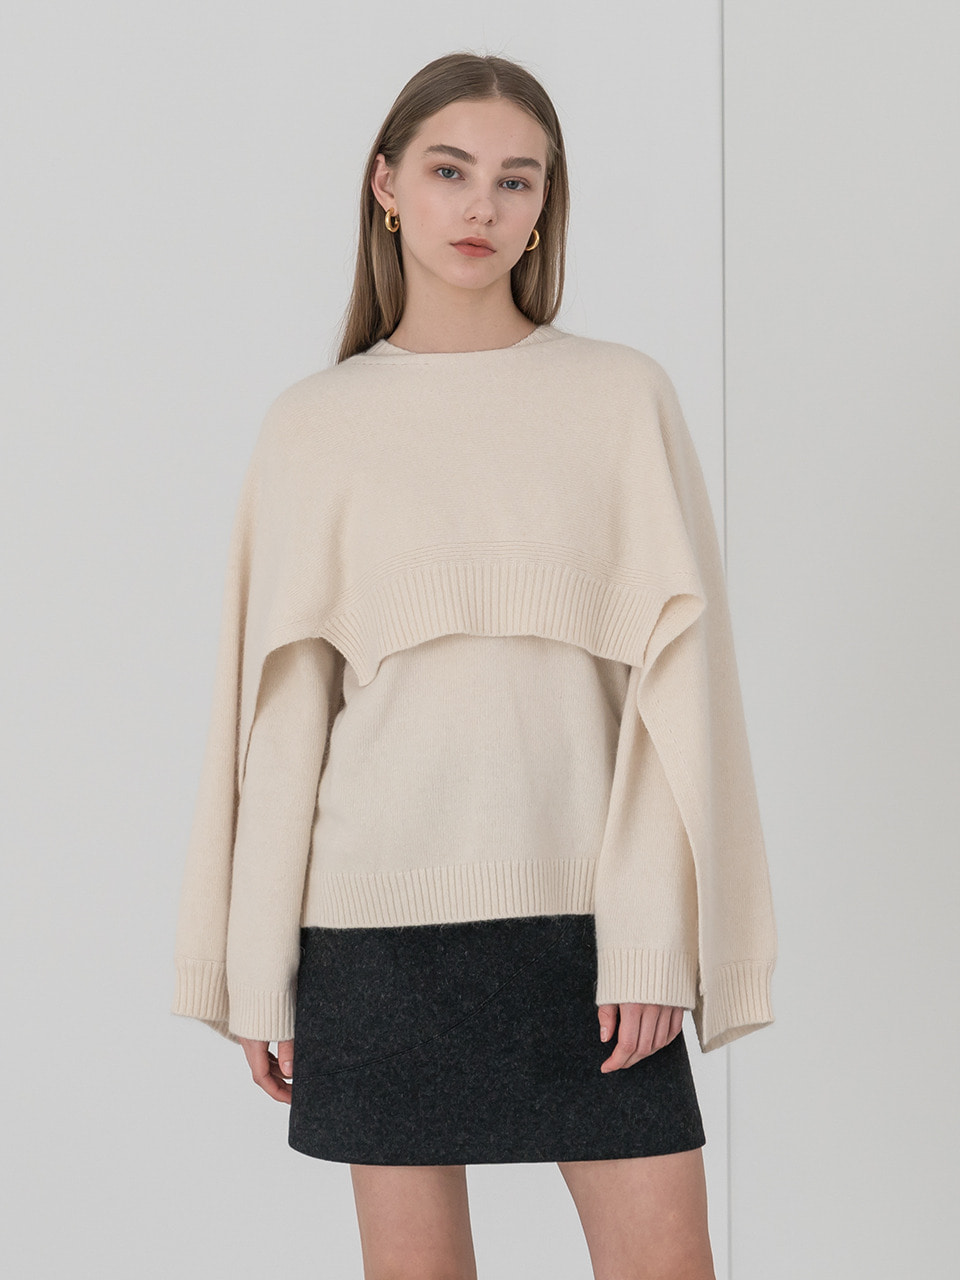 Cache layered wool knit in ivory [cape set]